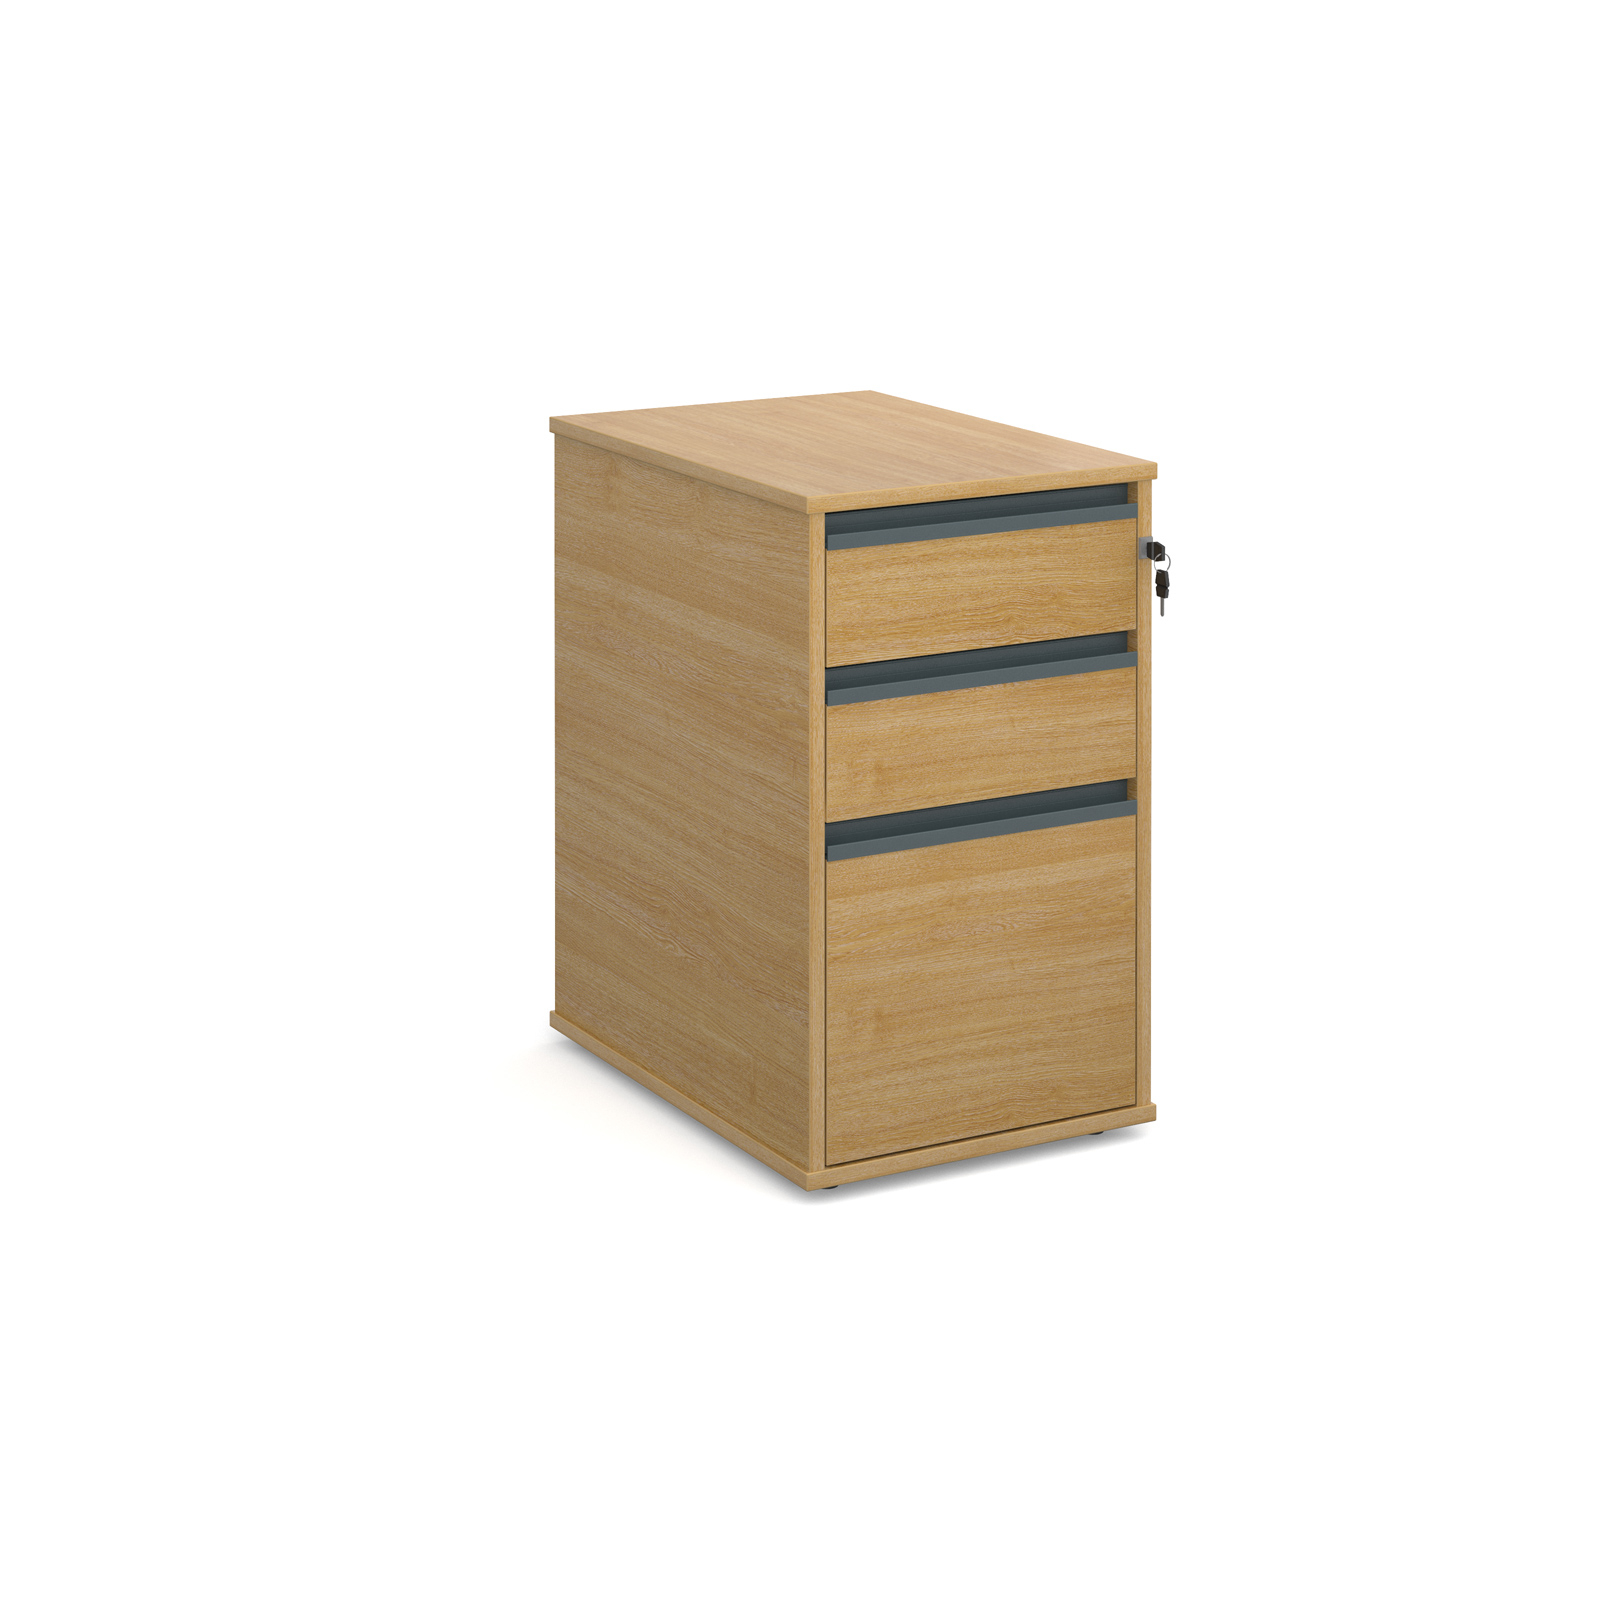 Image for 3 Drw Desk End Ped - Oak